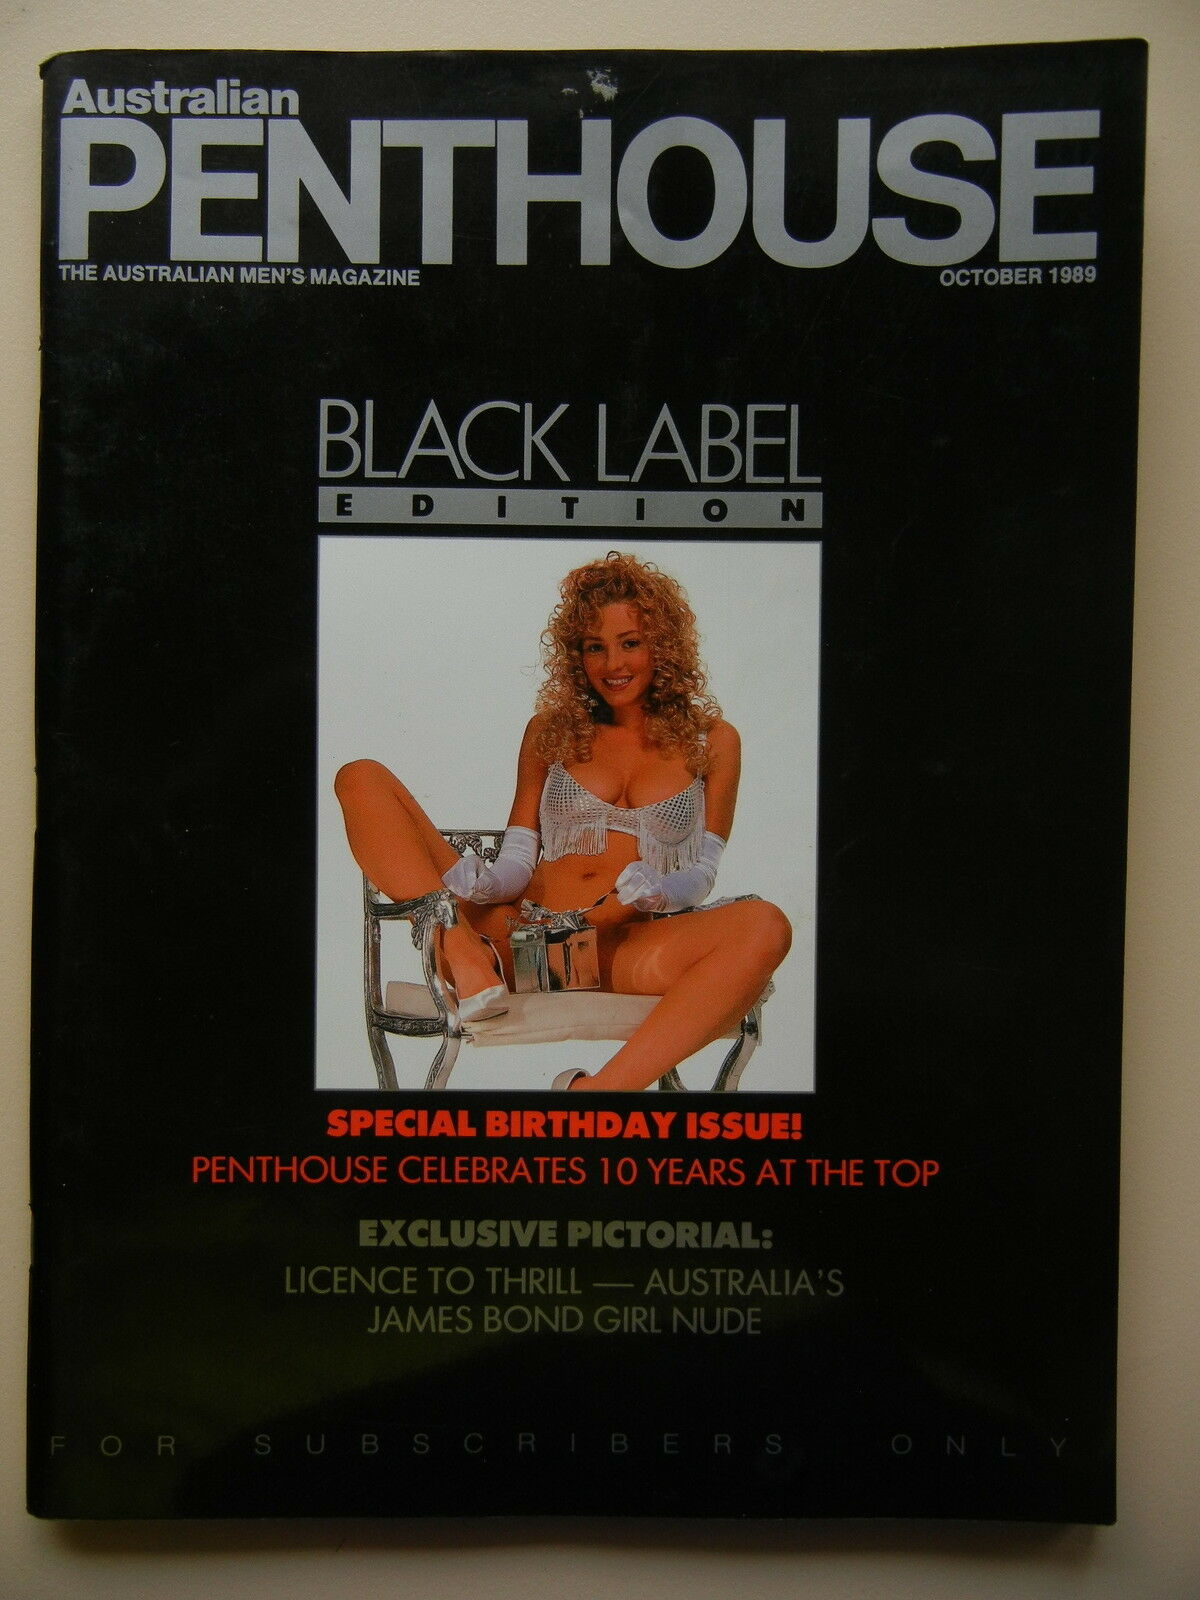 Black Label Australian Penthouse December 2011 Pet Of The Year Edition